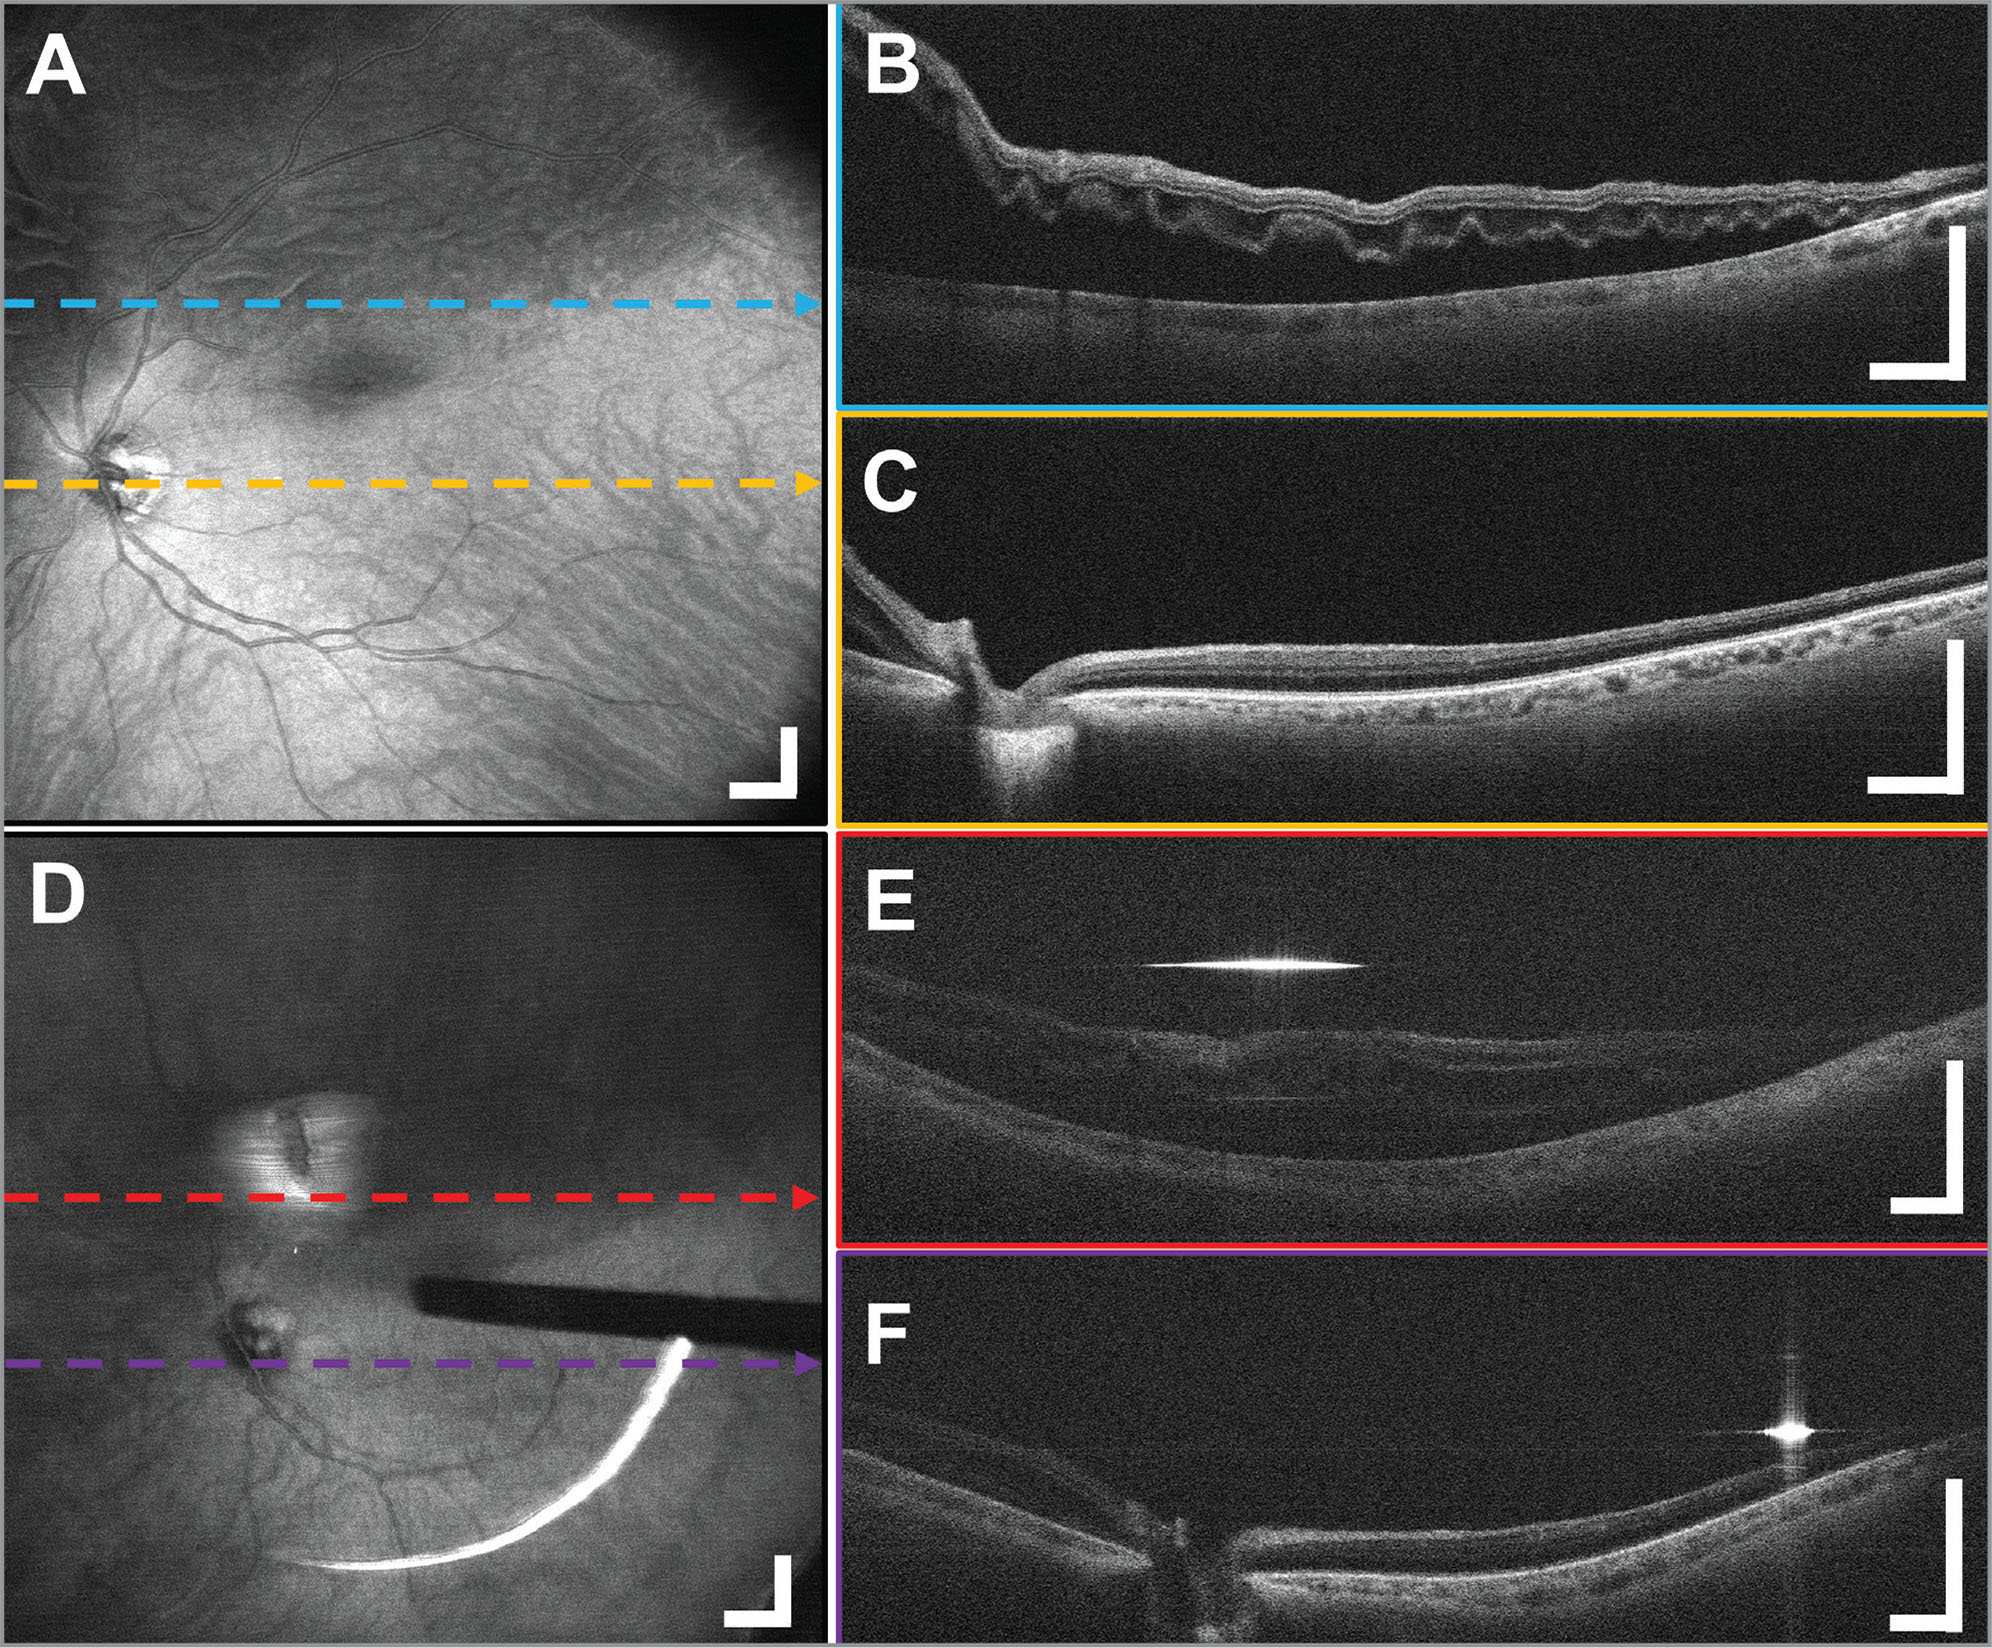 Microscope Integrated Intraoperative Ultrahigh Speed Swept Source Optical Coherence Tomography